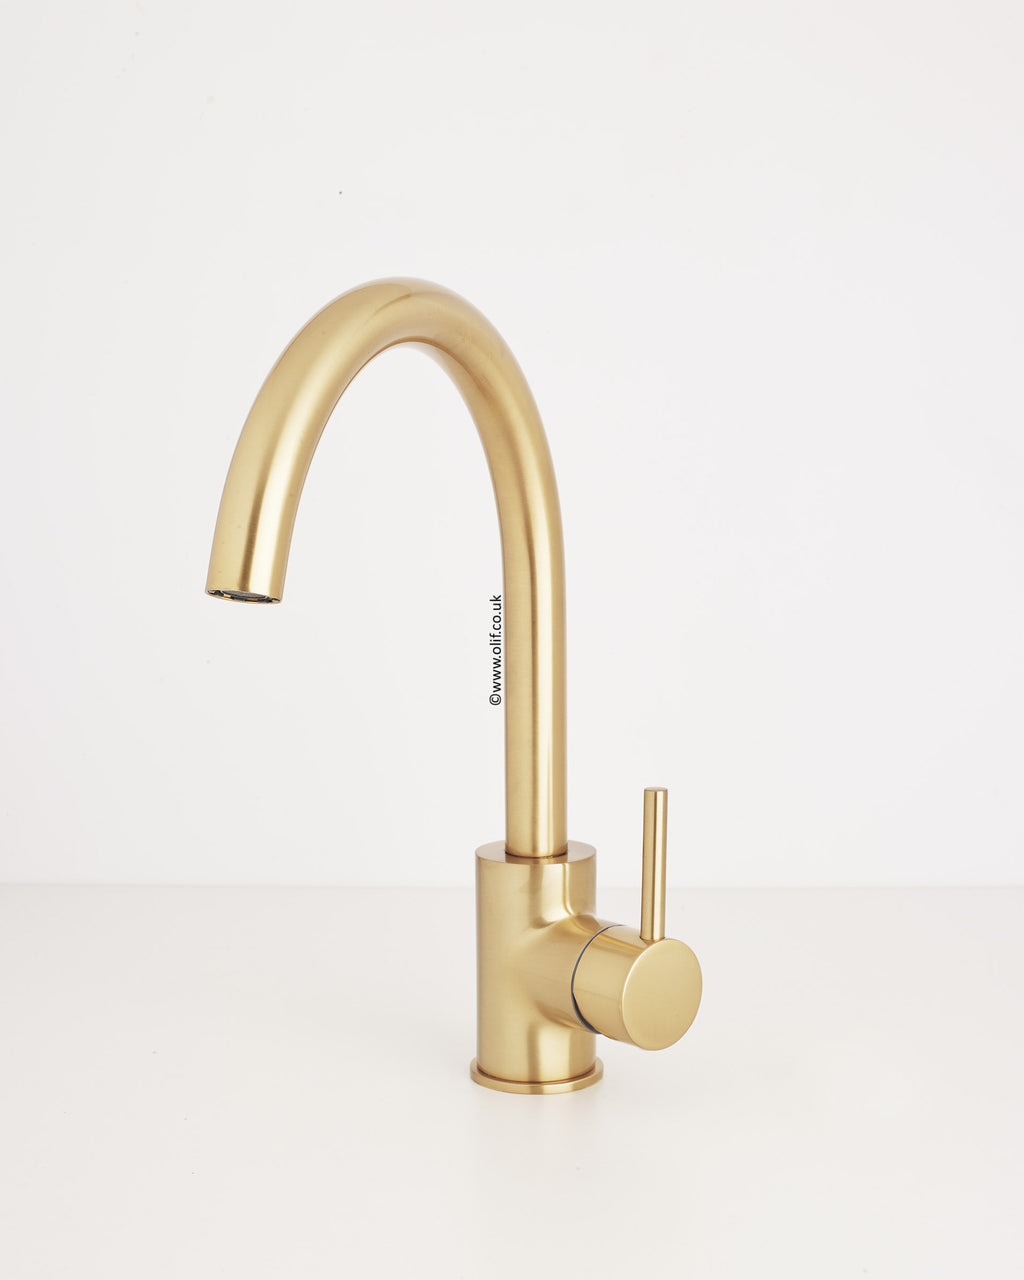 Cascata Satin Bronze kitchen mixer tap, with Eco handle